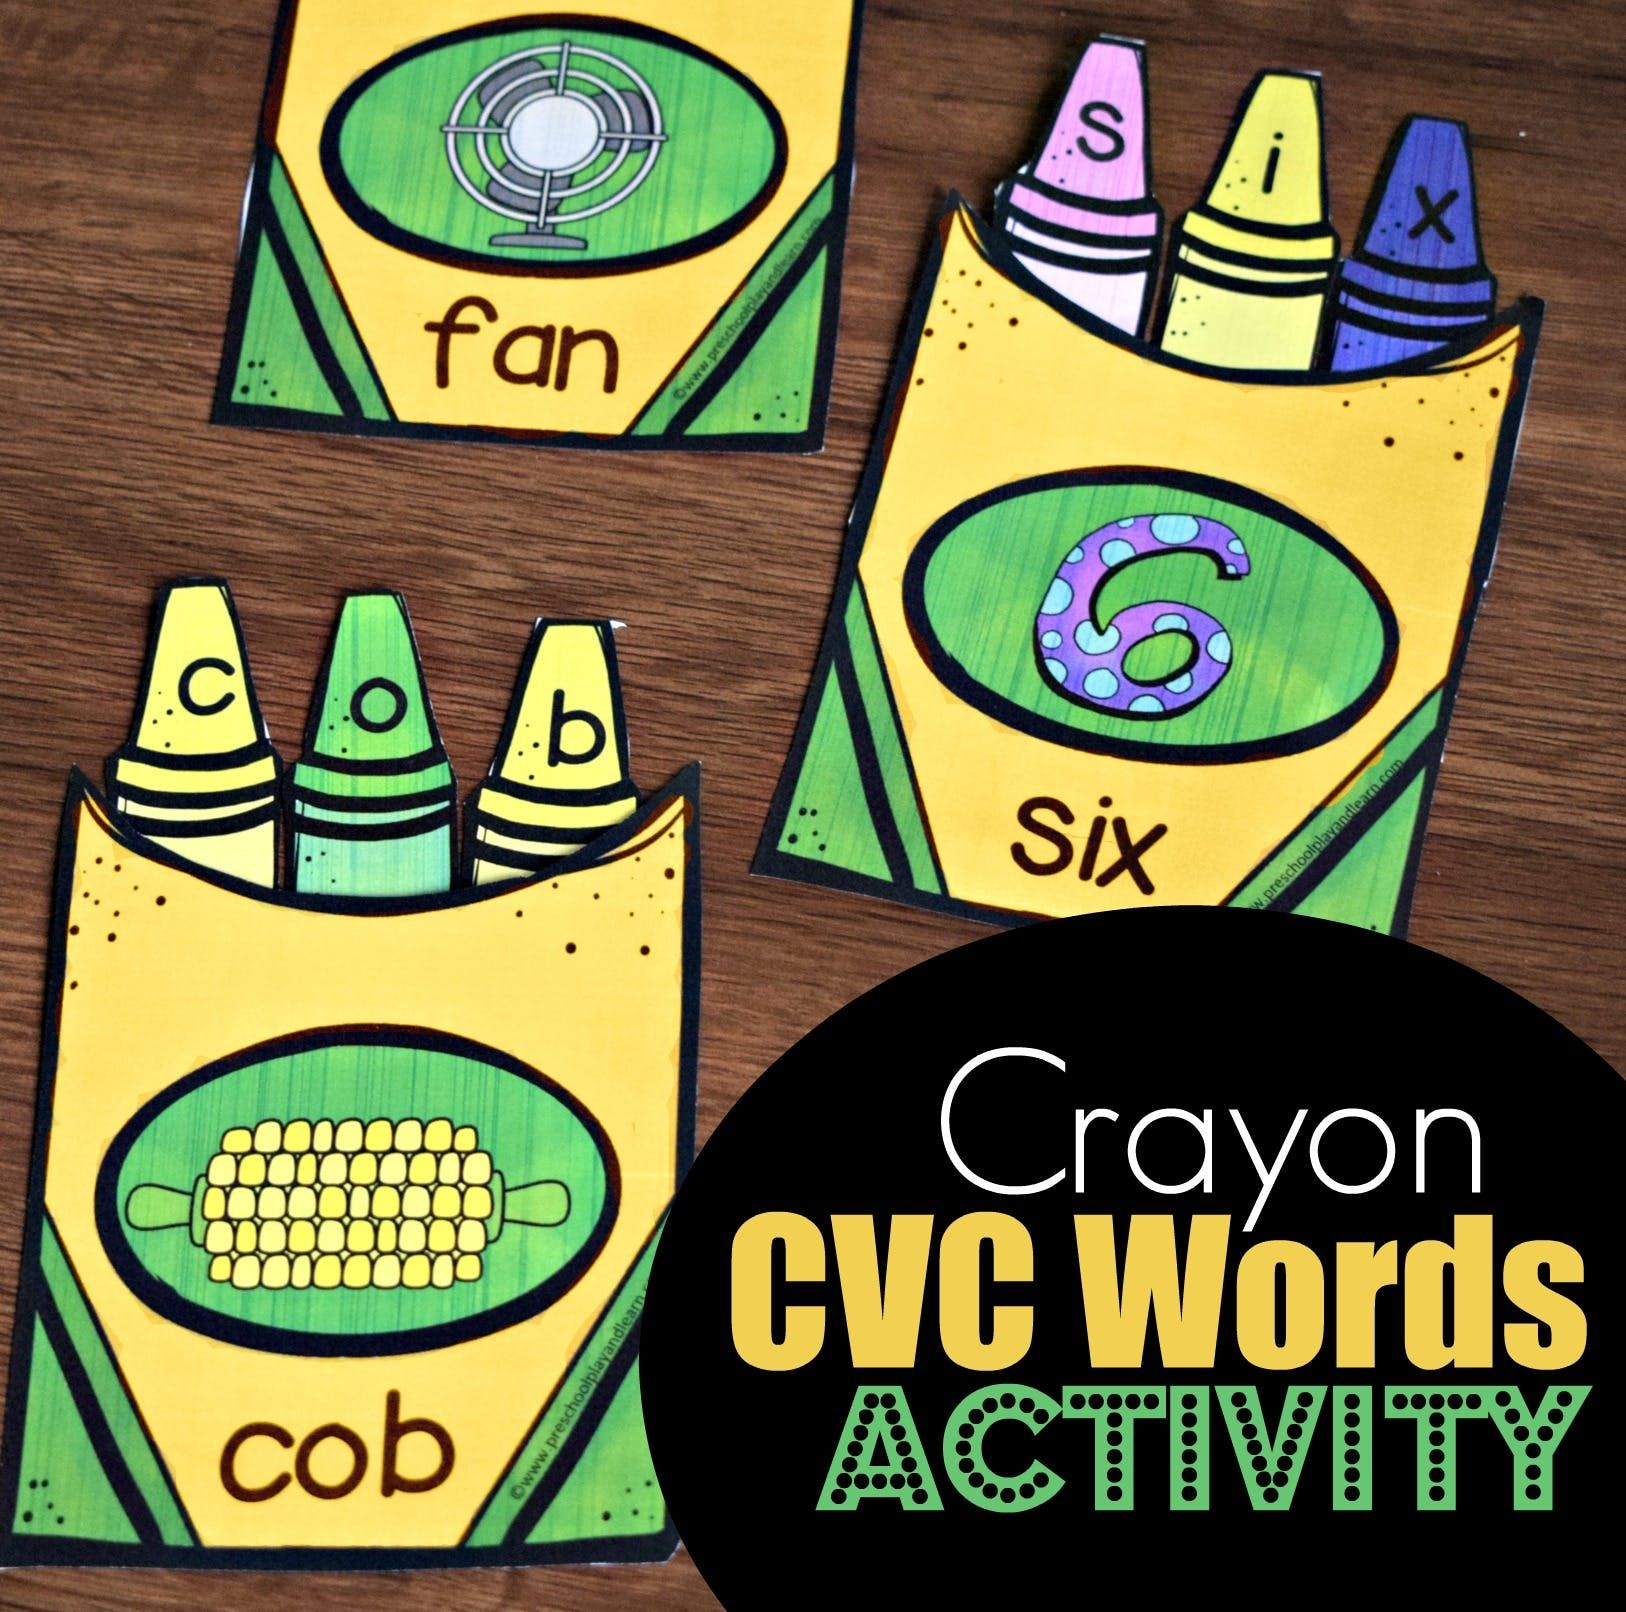 Crayon Cvc Words Activity With Images